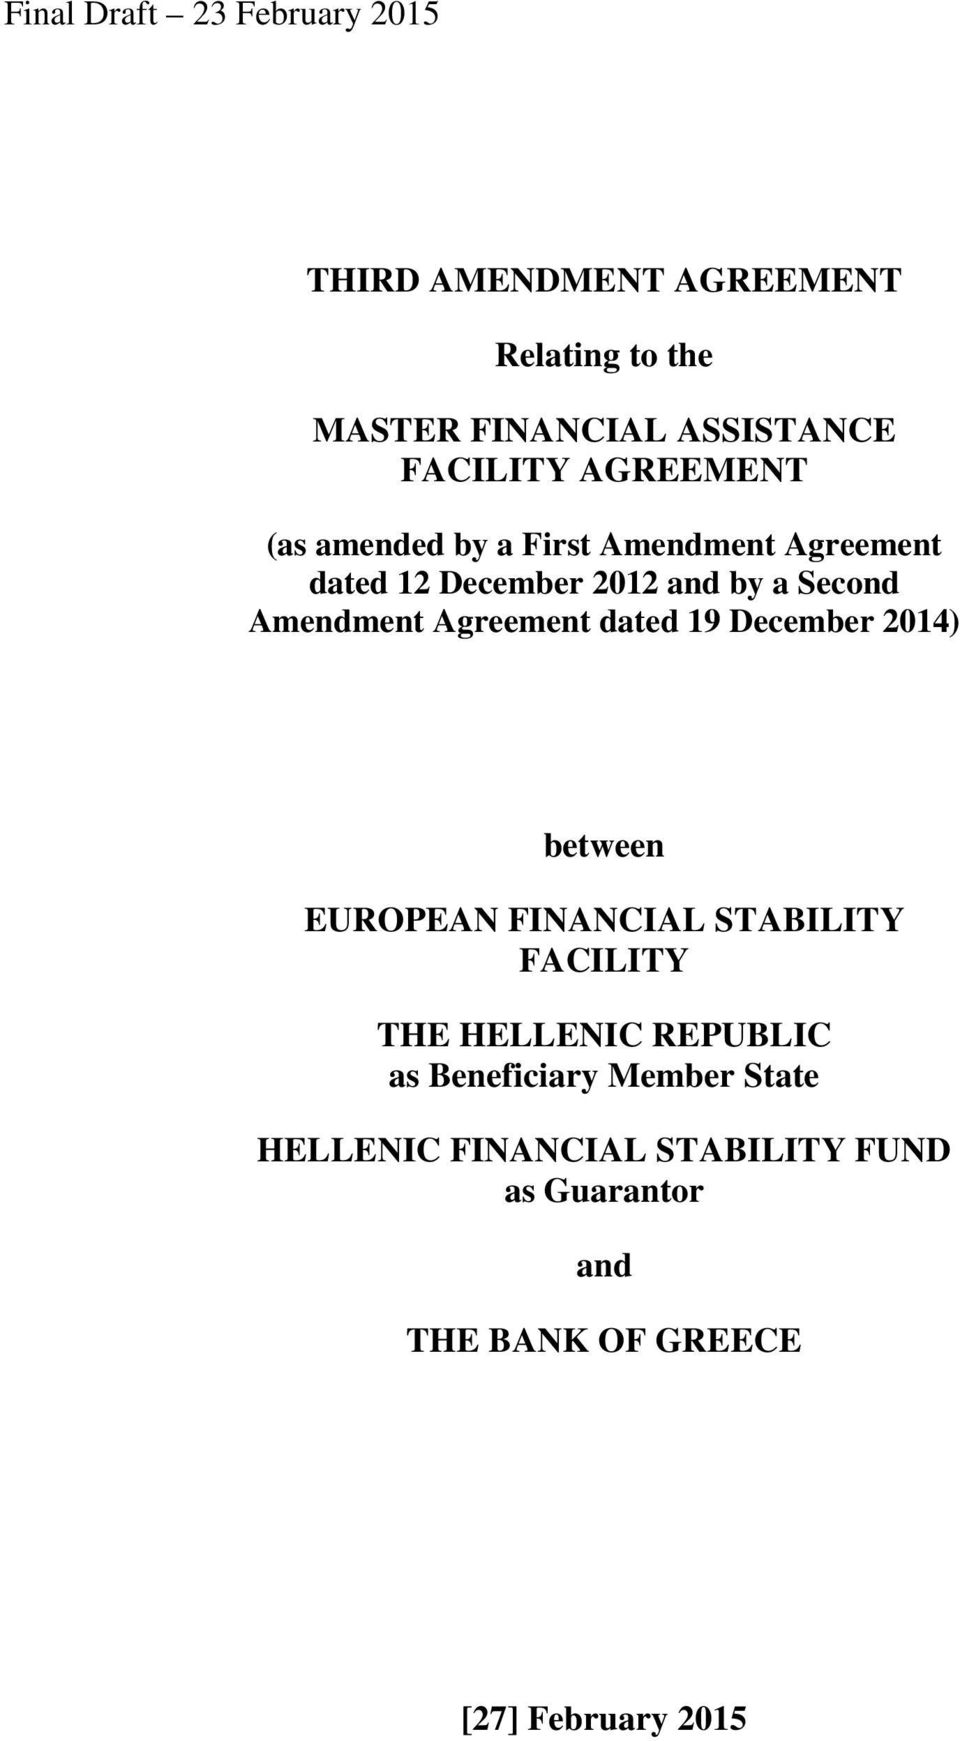 Amendment Agreement dated 19 December 2014) between EUROPEAN FINANCIAL STABILITY FACILITY THE HELLENIC